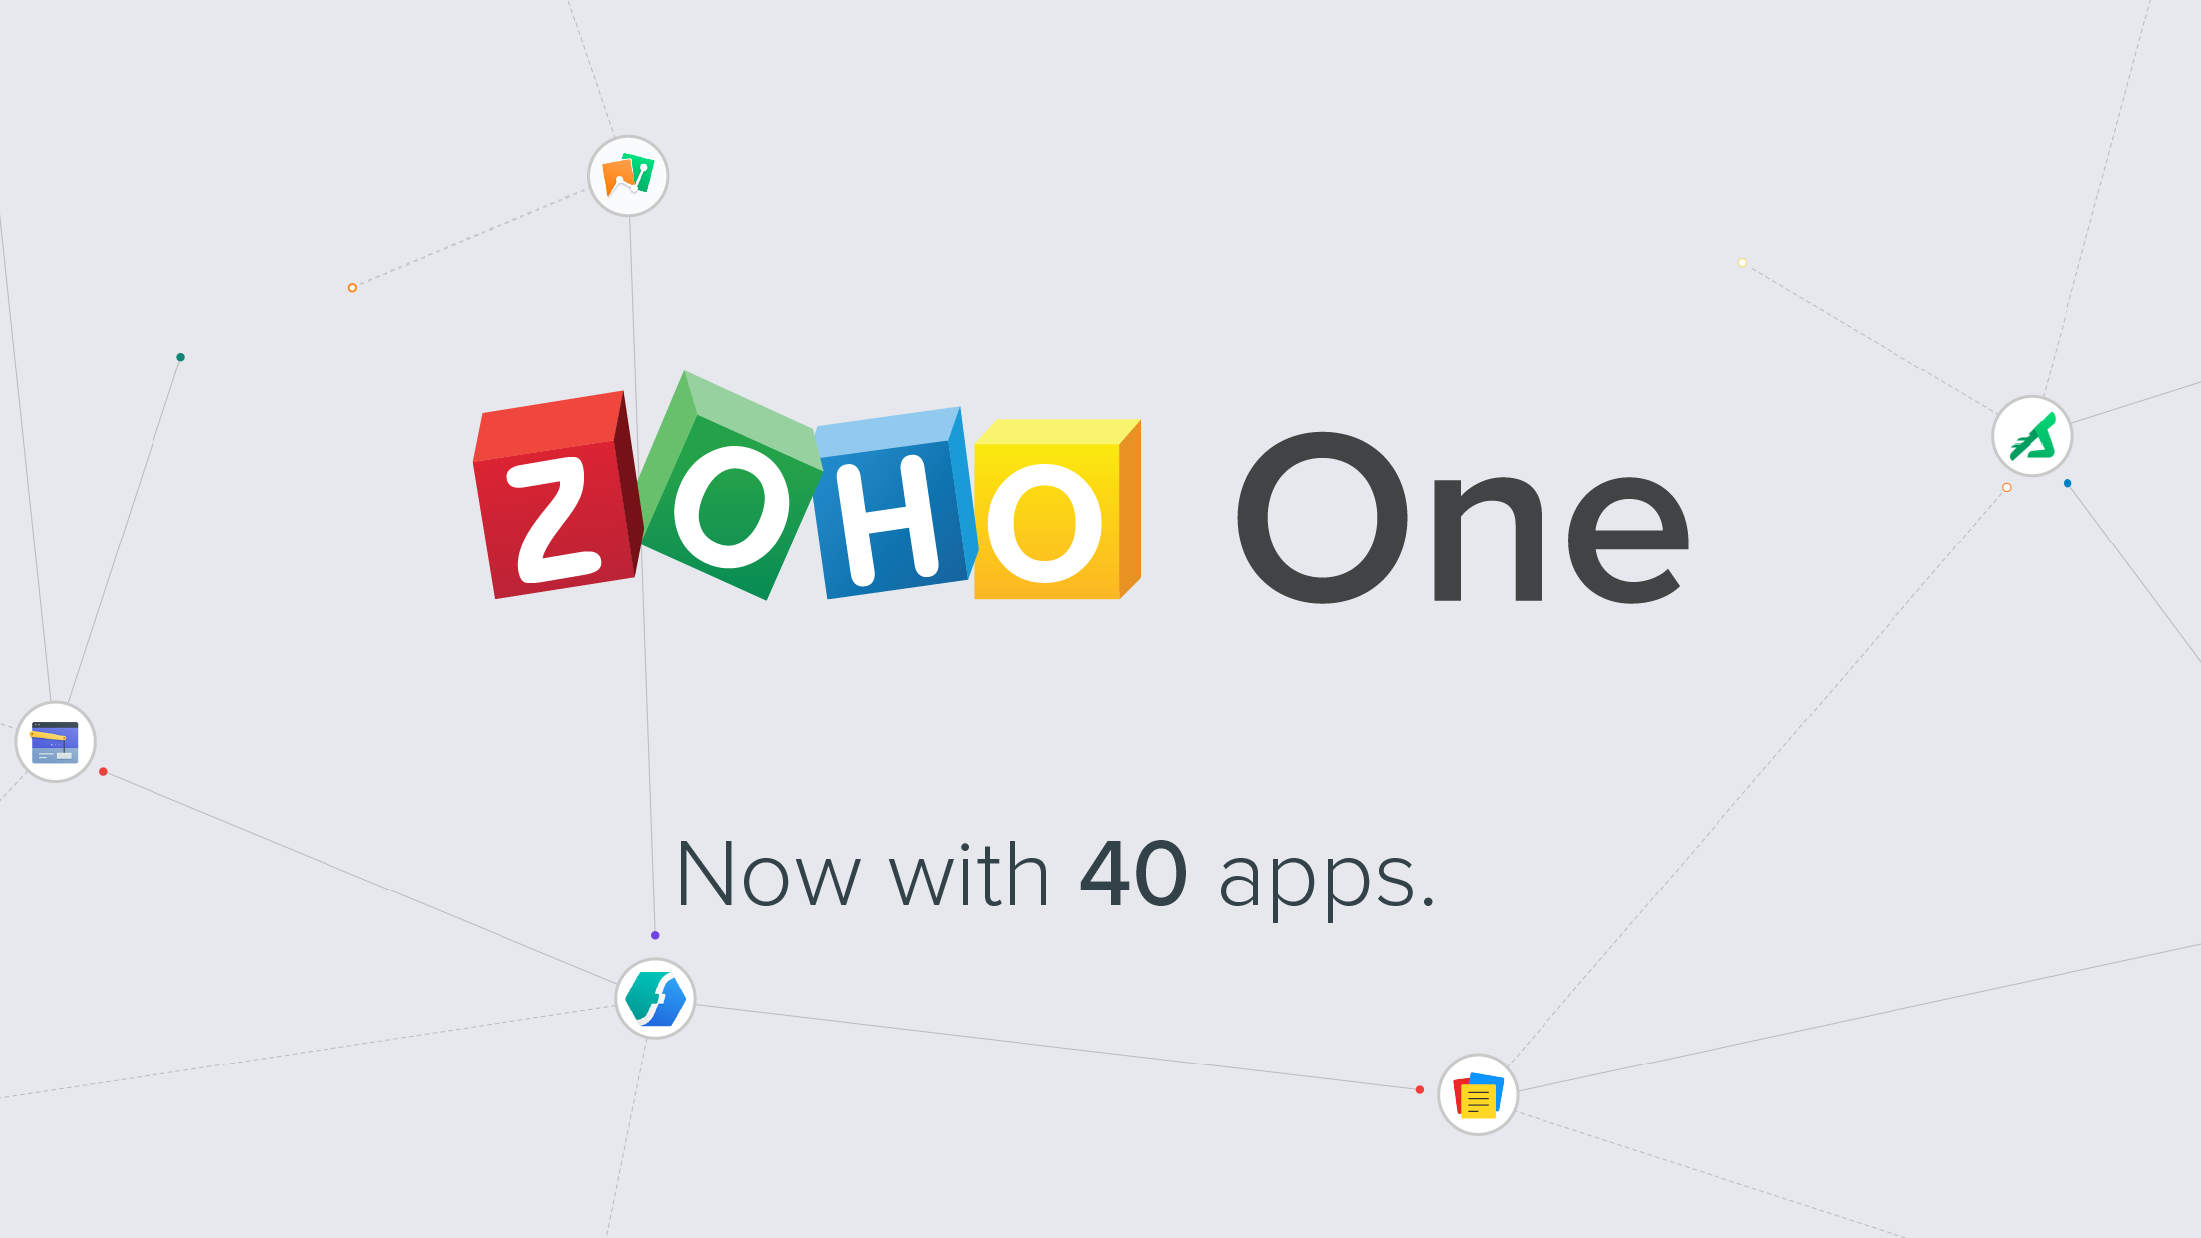 Zoho One: Now with 40 Apps to Run Your Business